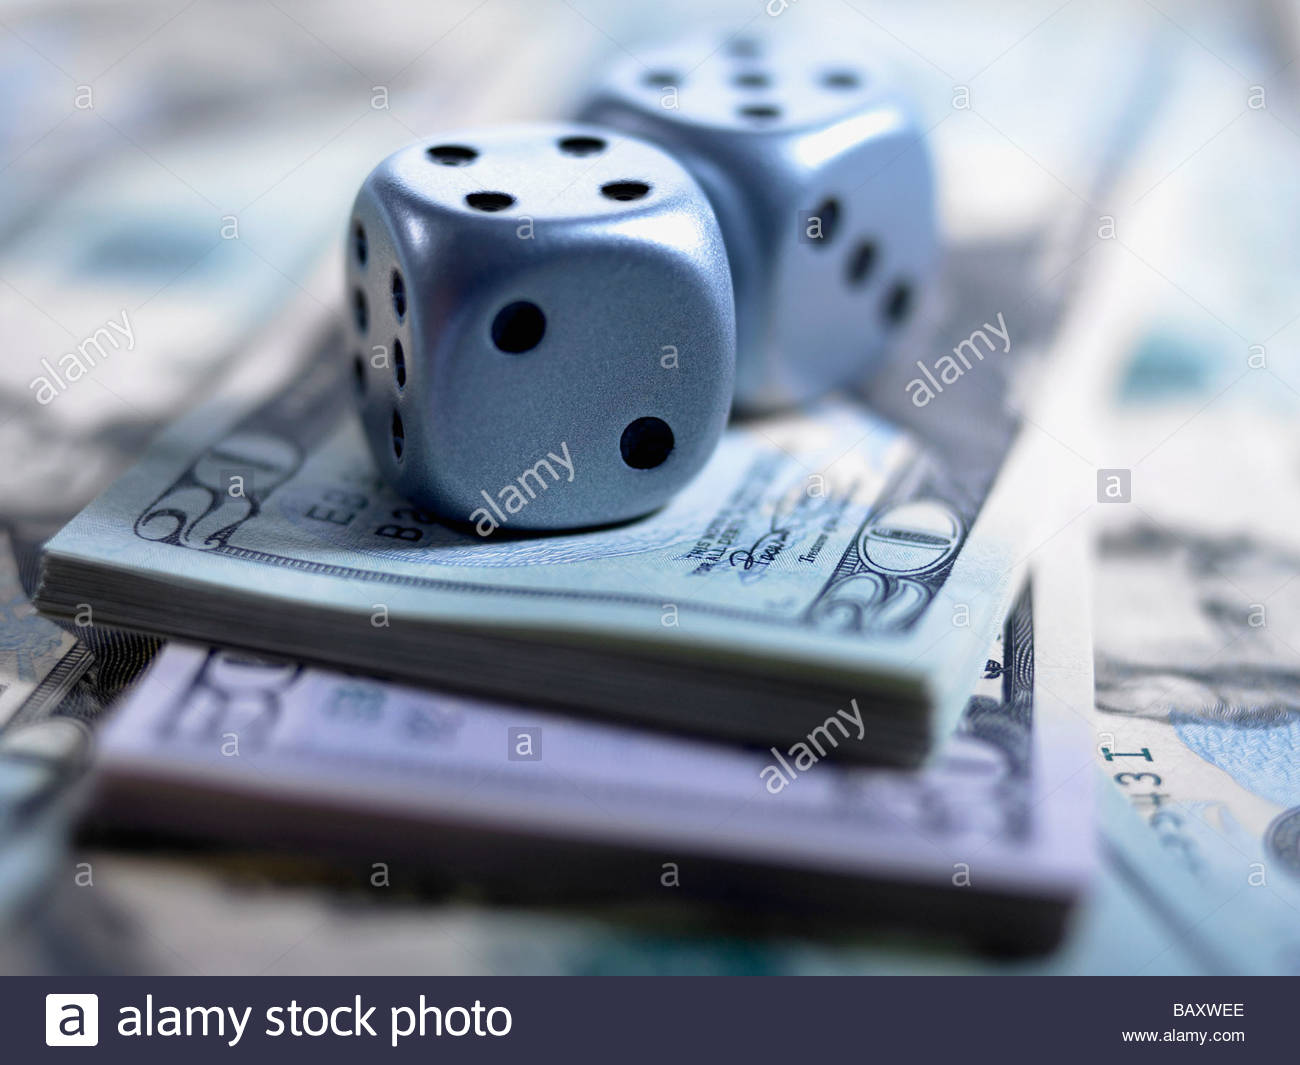 Close up of dice and US currency - Stock Image